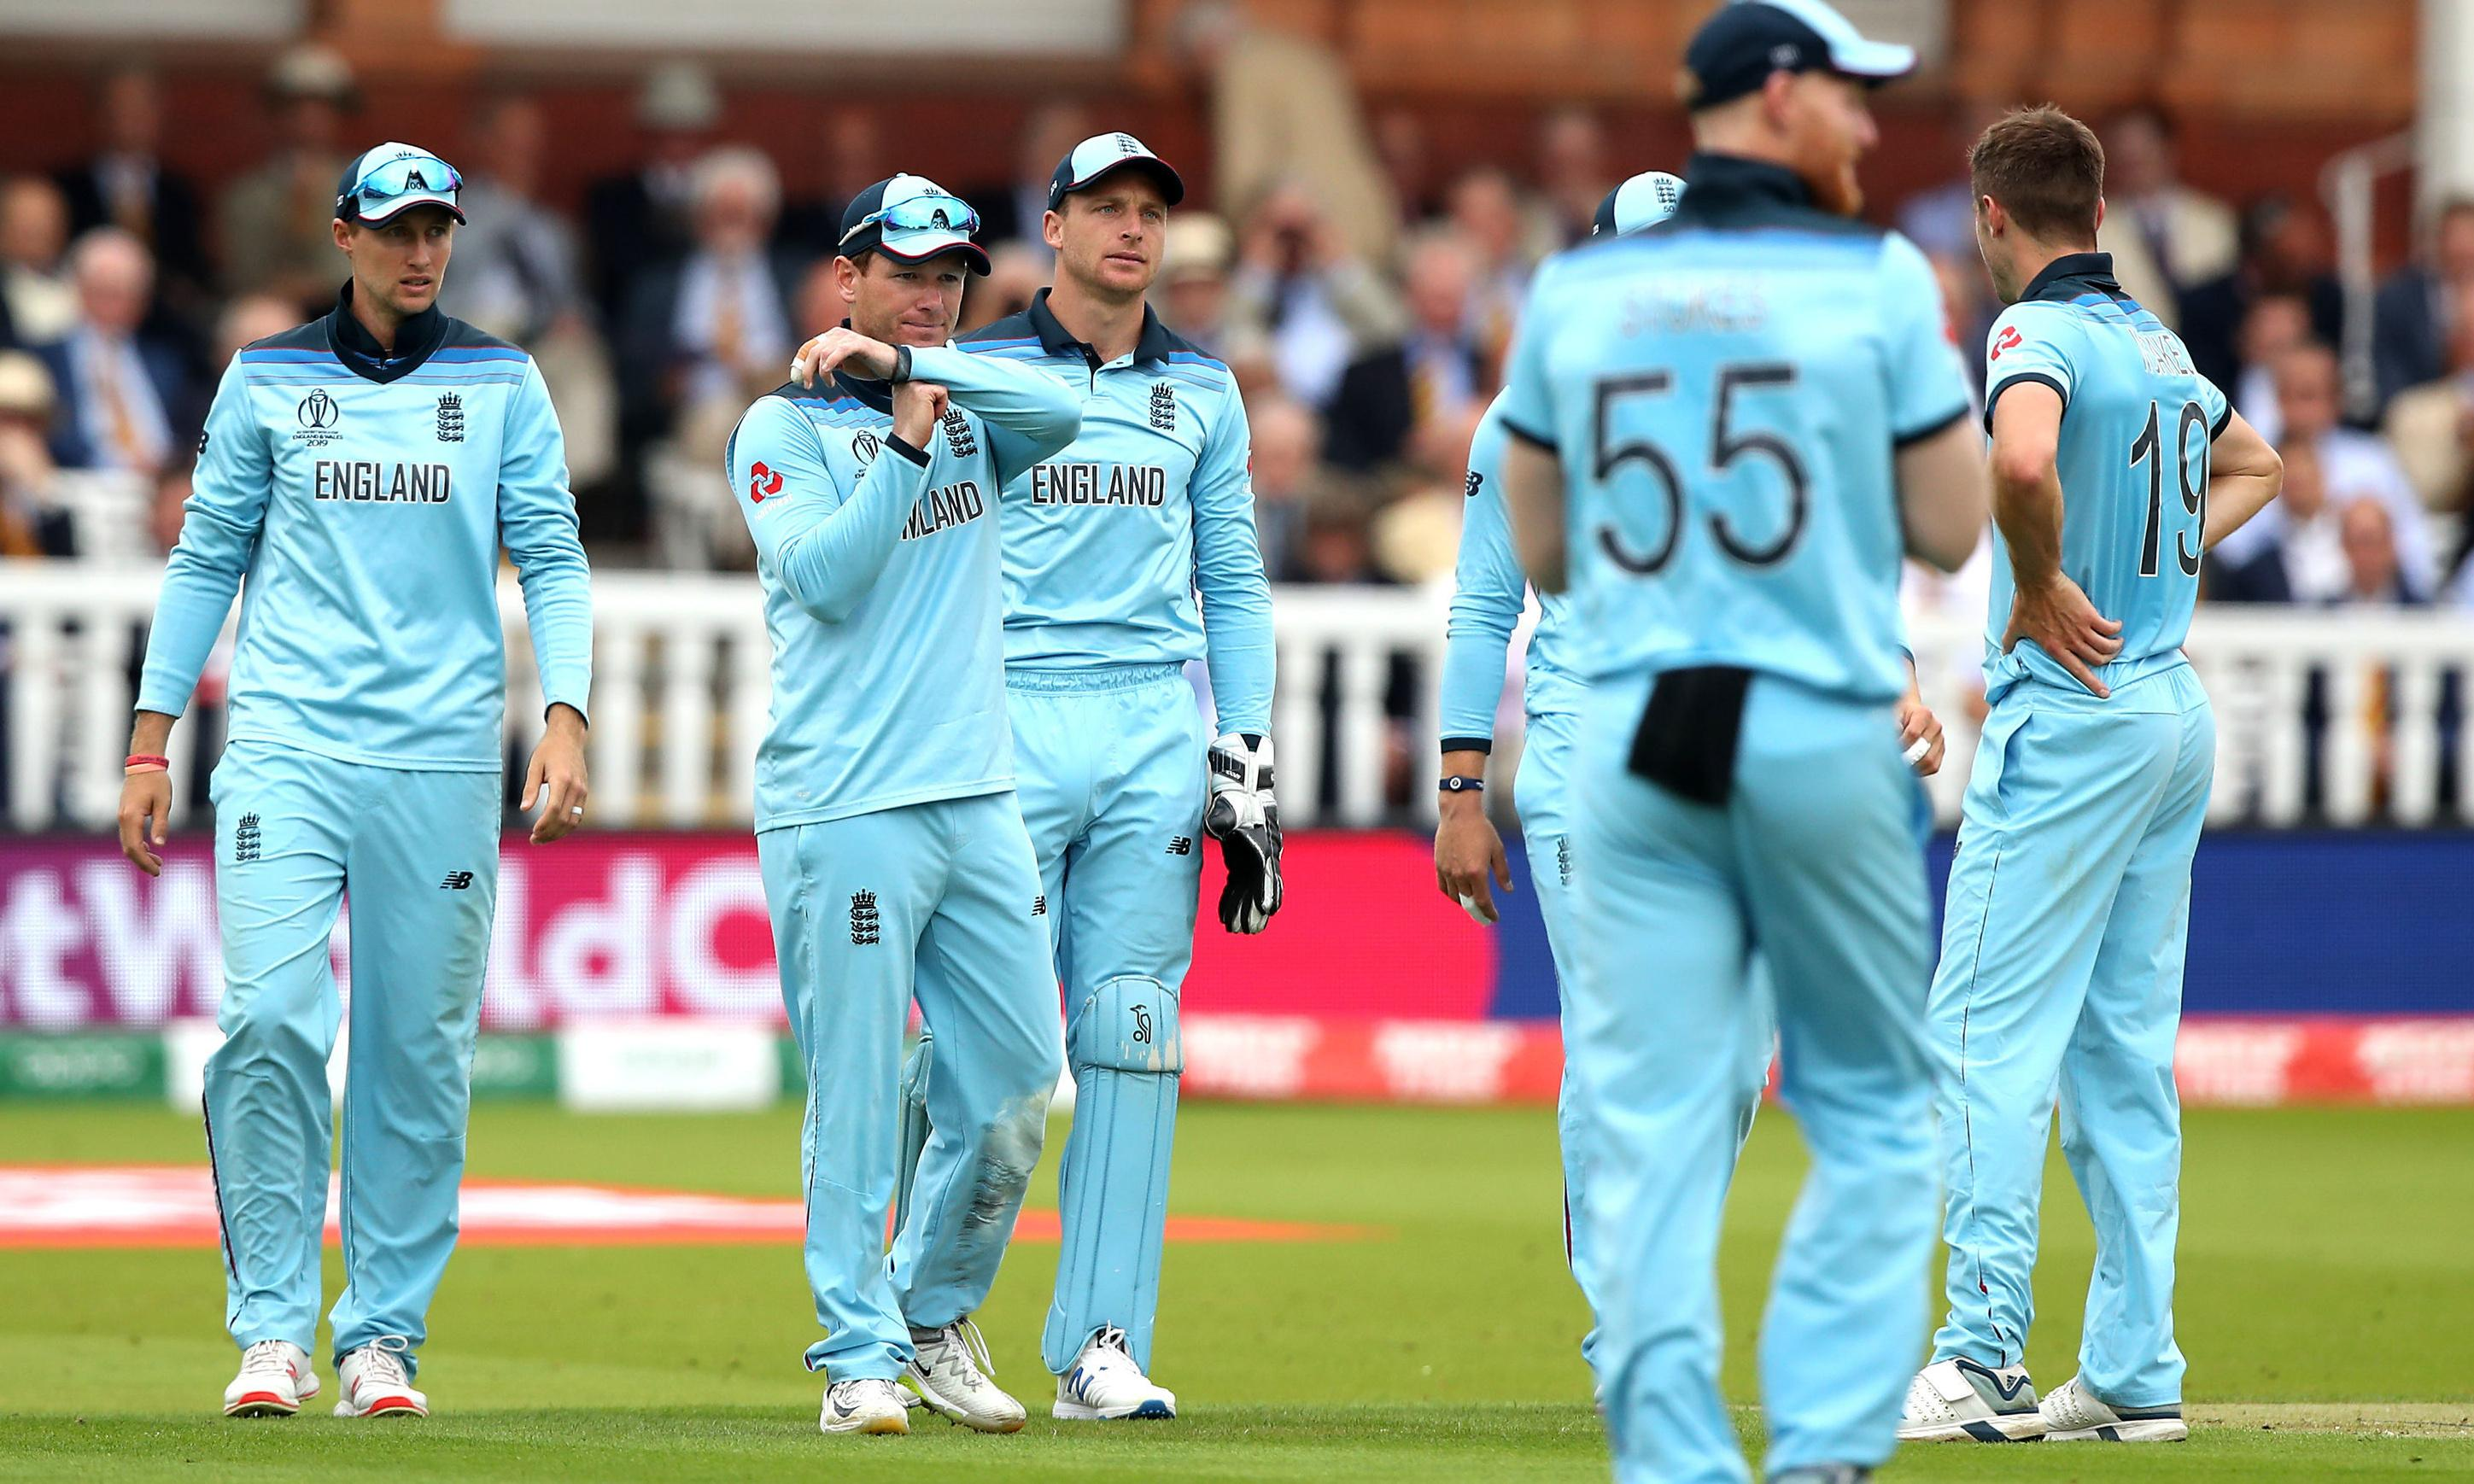 Eoin Morgan faces ultimate test in England's crunch World Cup week